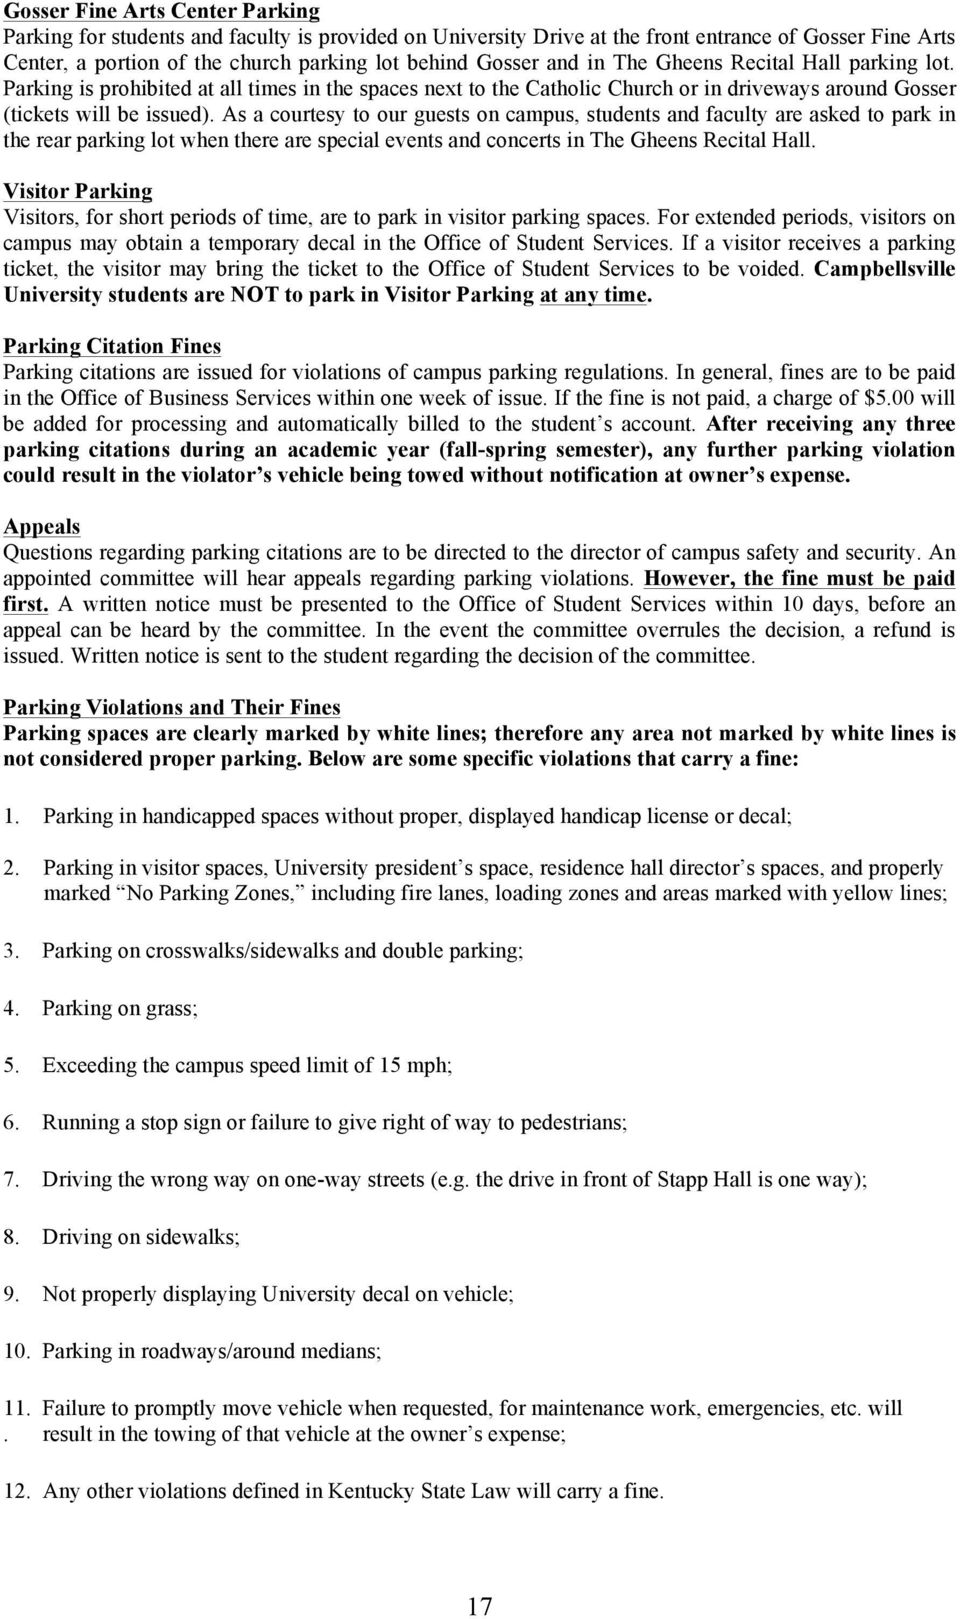 As a courtesy to our guests on campus, students and faculty are asked to park in the rear parking lot when there are special events and concerts in The Gheens Recital Hall.